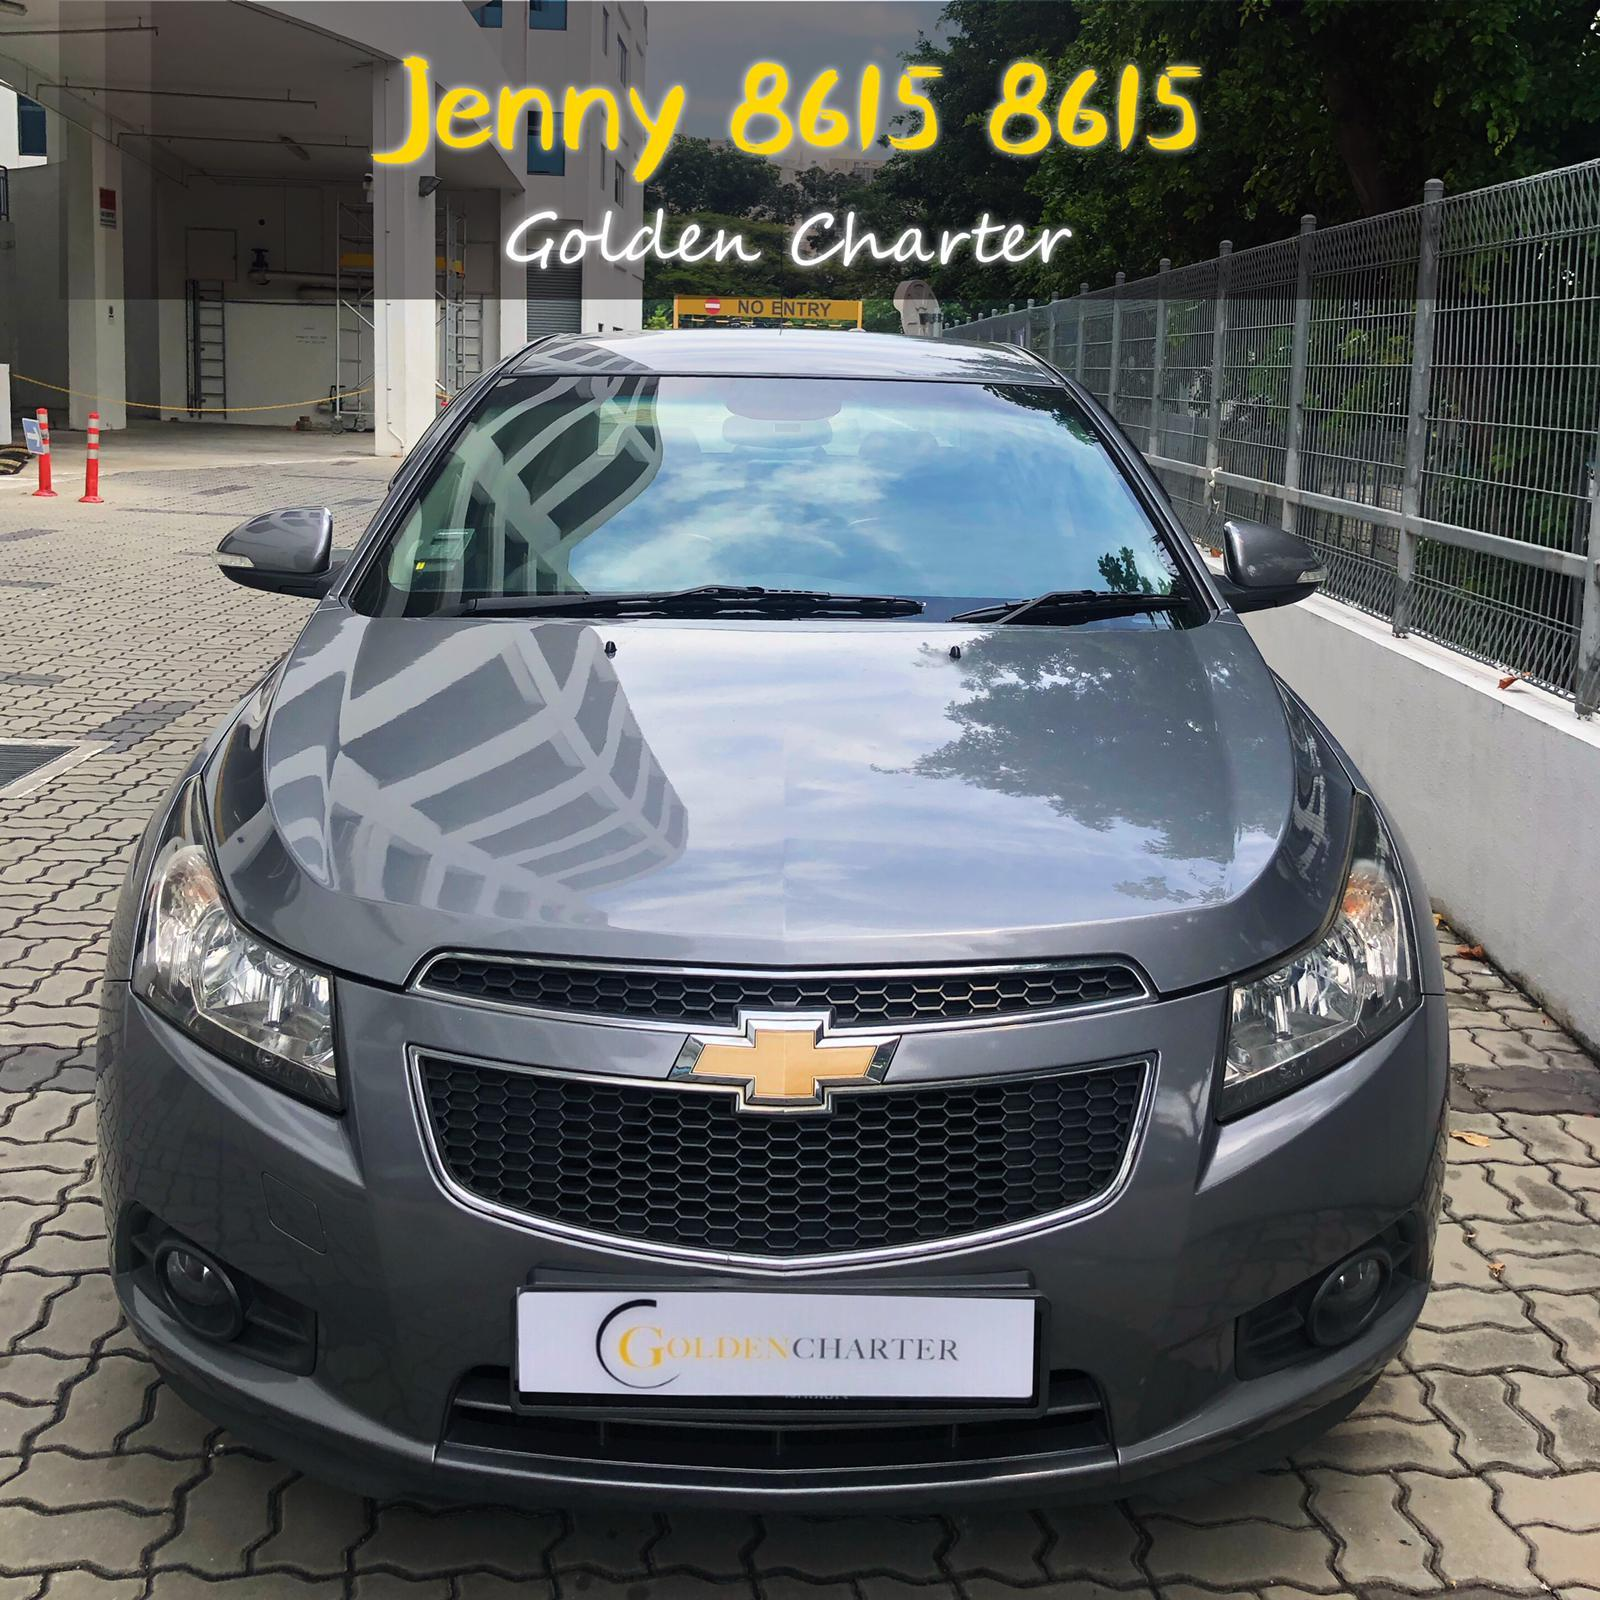 Chevrolet Cruze *TOP CONDITION* conti car for rent Altis Car Axio Premio Allion Camry Honda Jazz Fit Stream Civic Cars Hyundai Avante $50 perday PHV  For Rent Grab Rental Gojek Or Personal Use Low price and Cheap